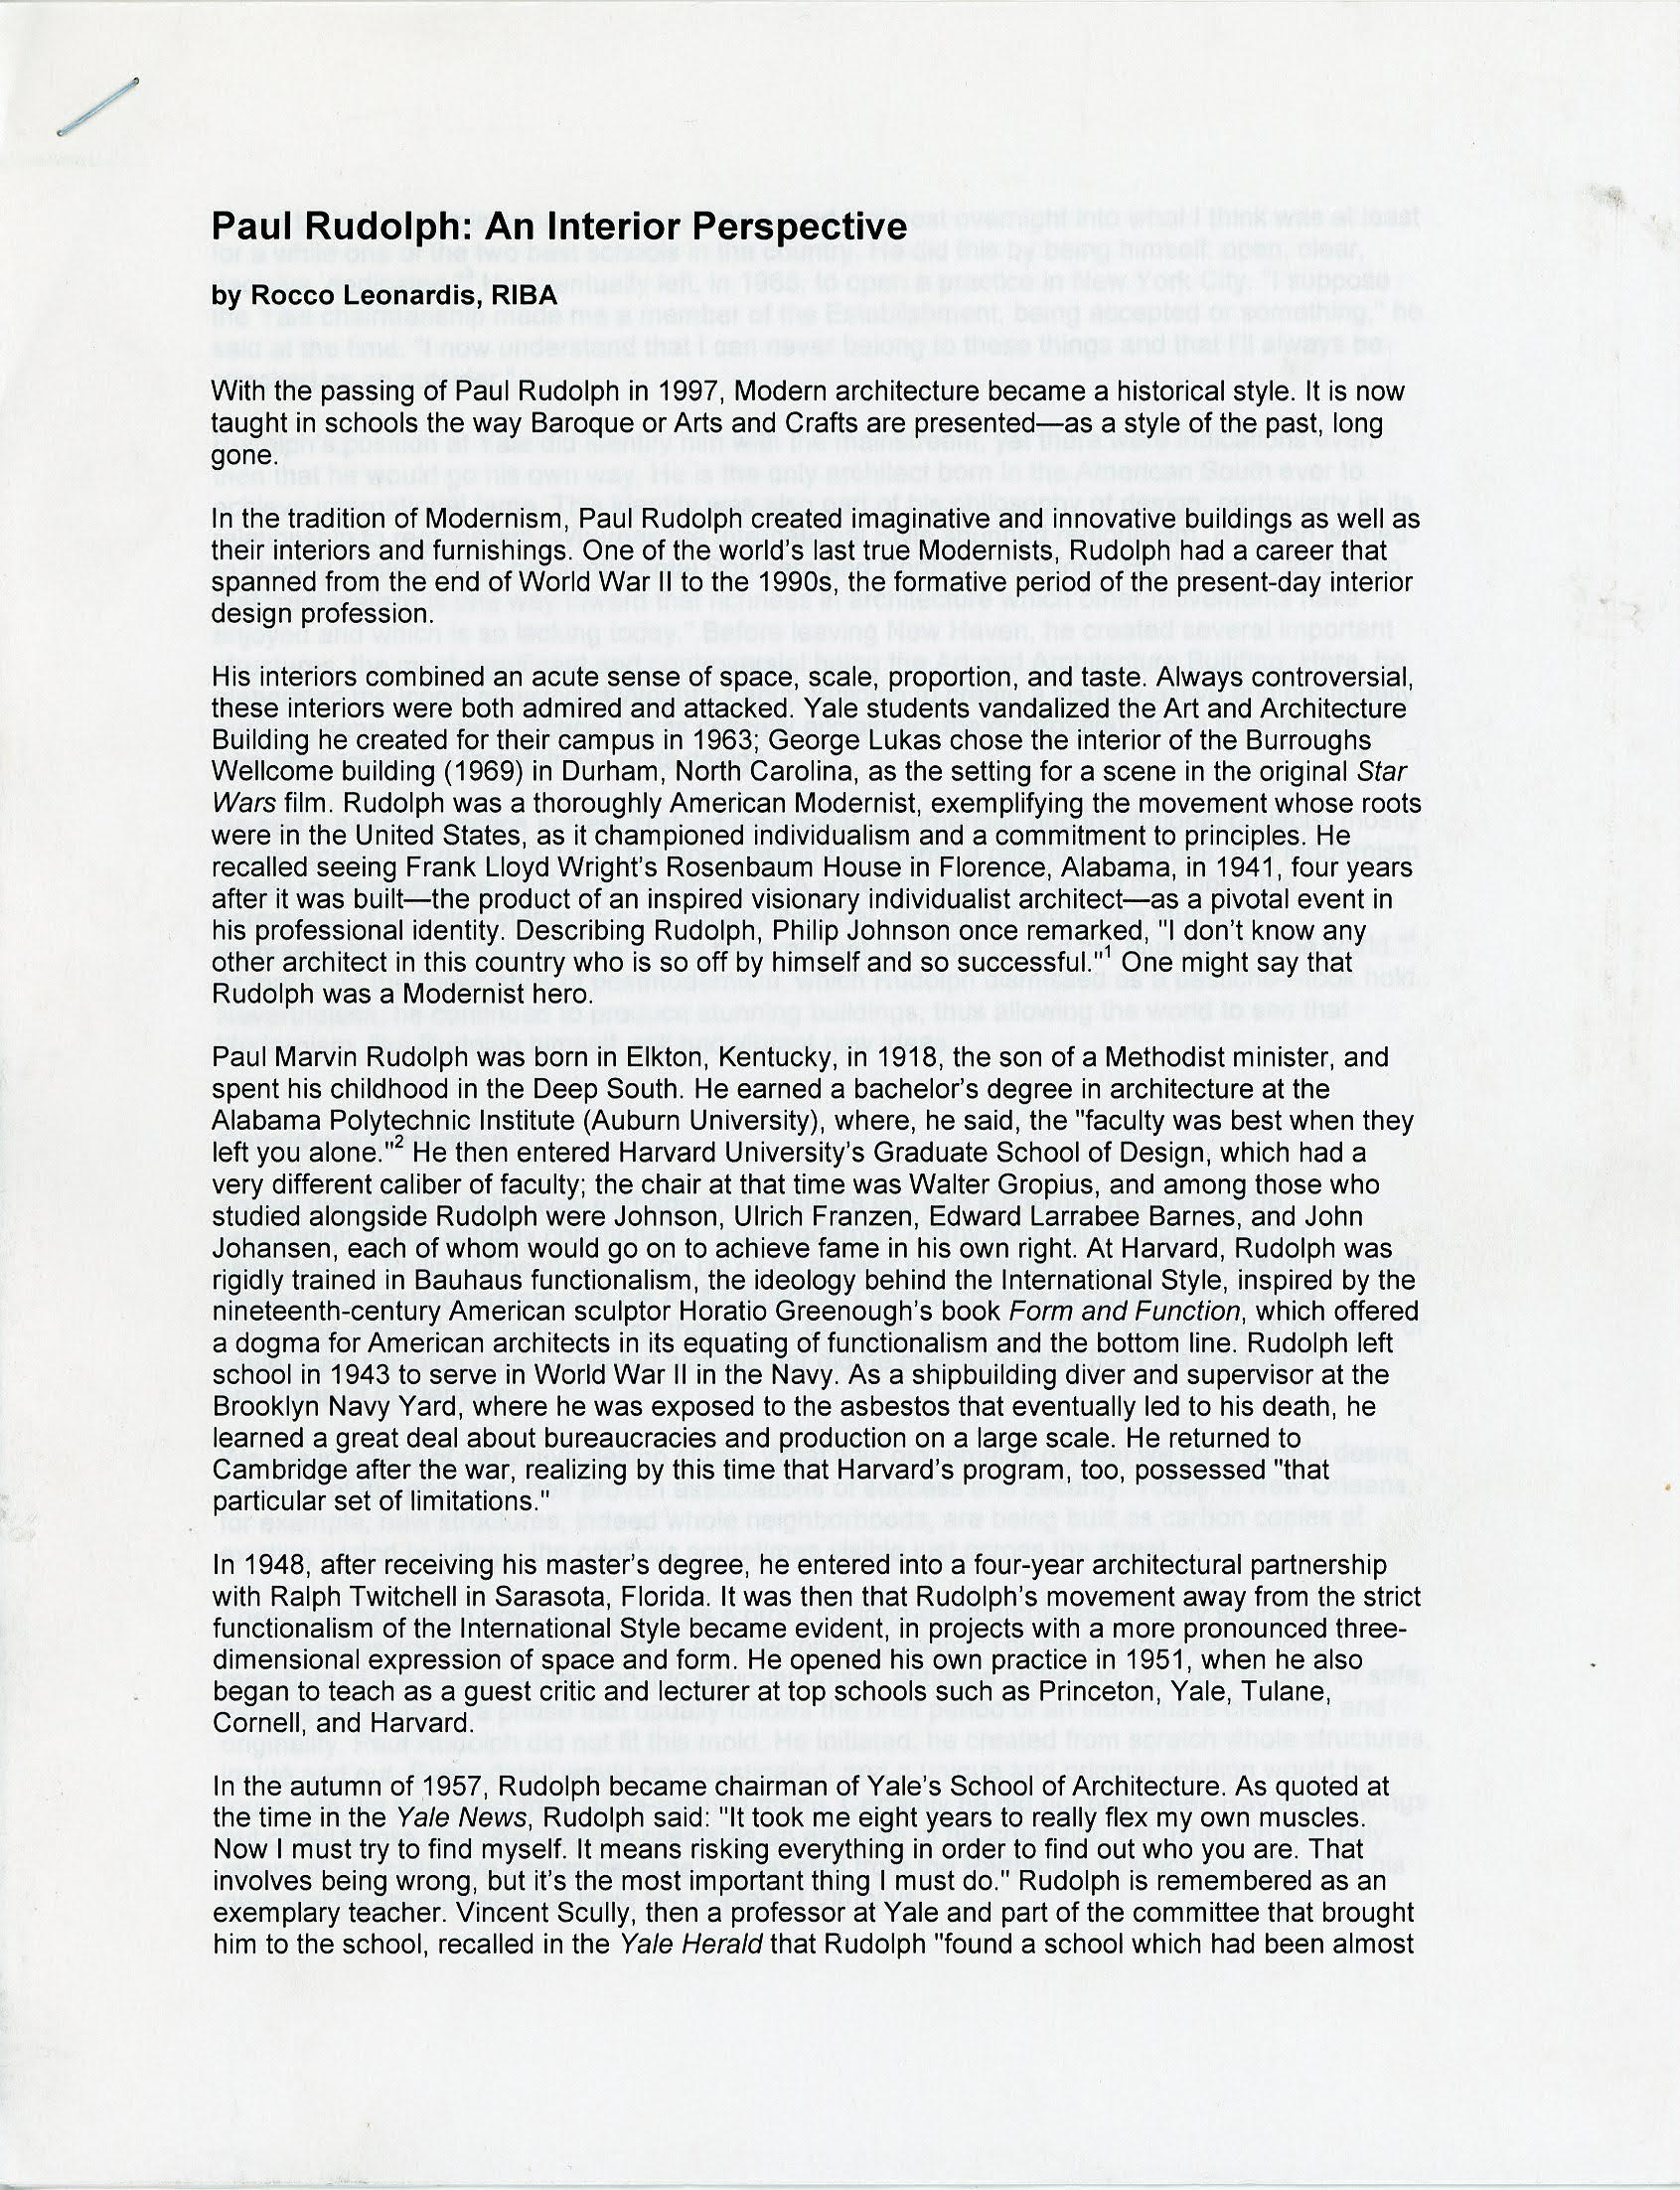 Rocco document - page 1 of 4.jpg